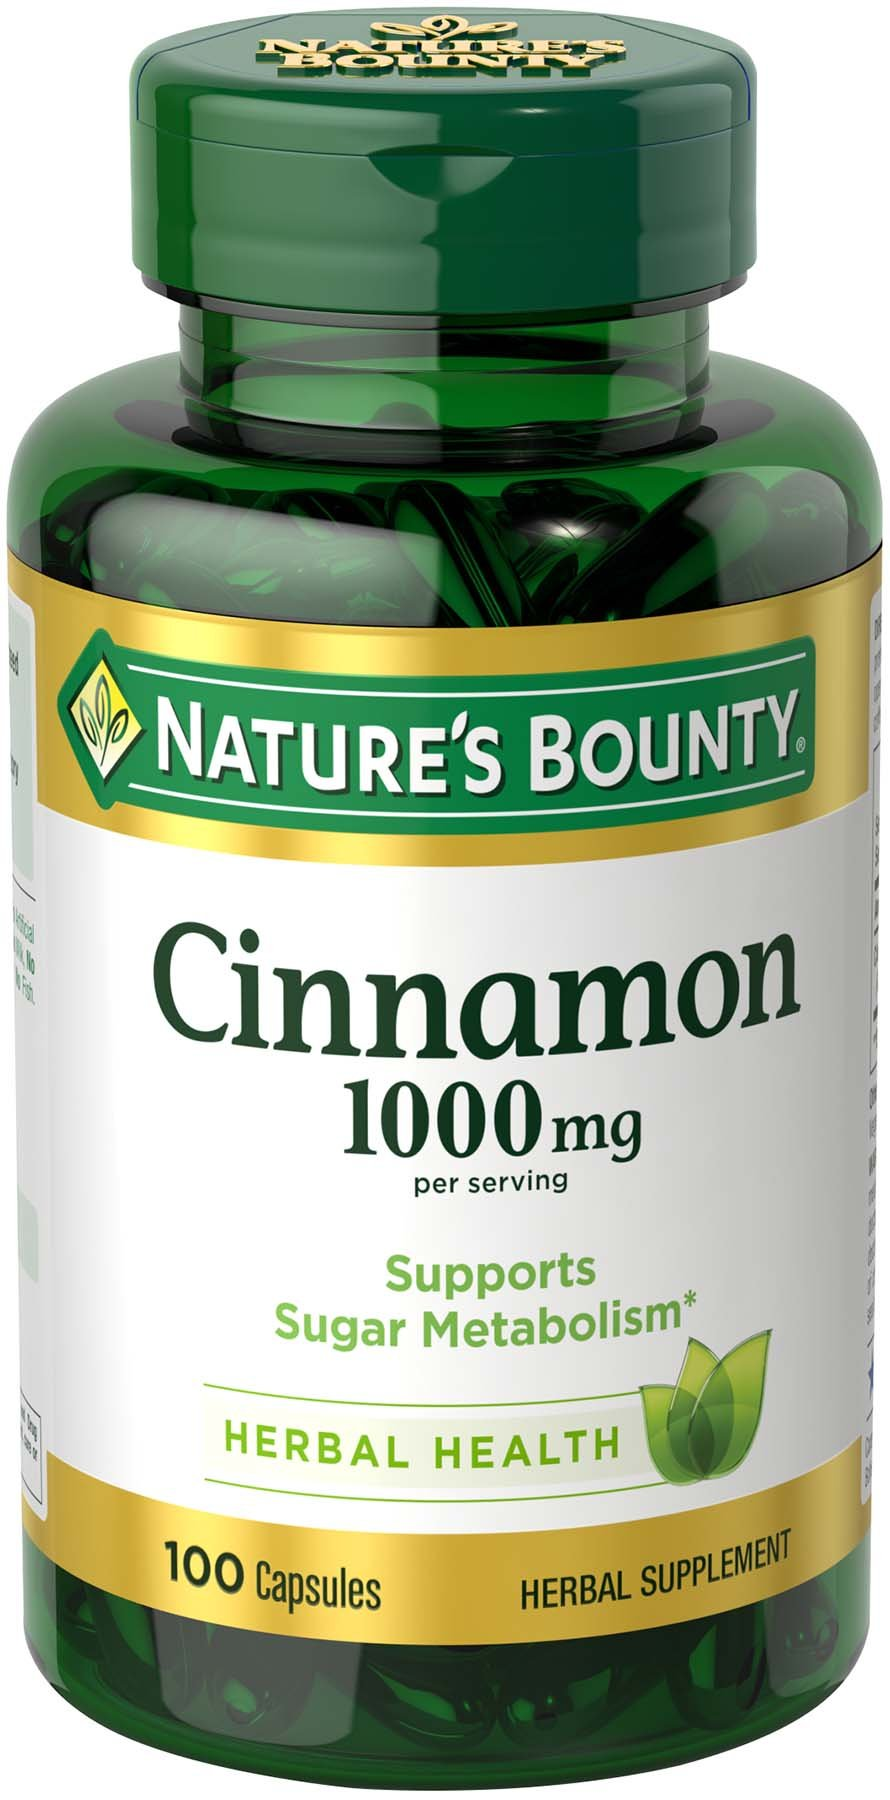 Cinnamon in pill form